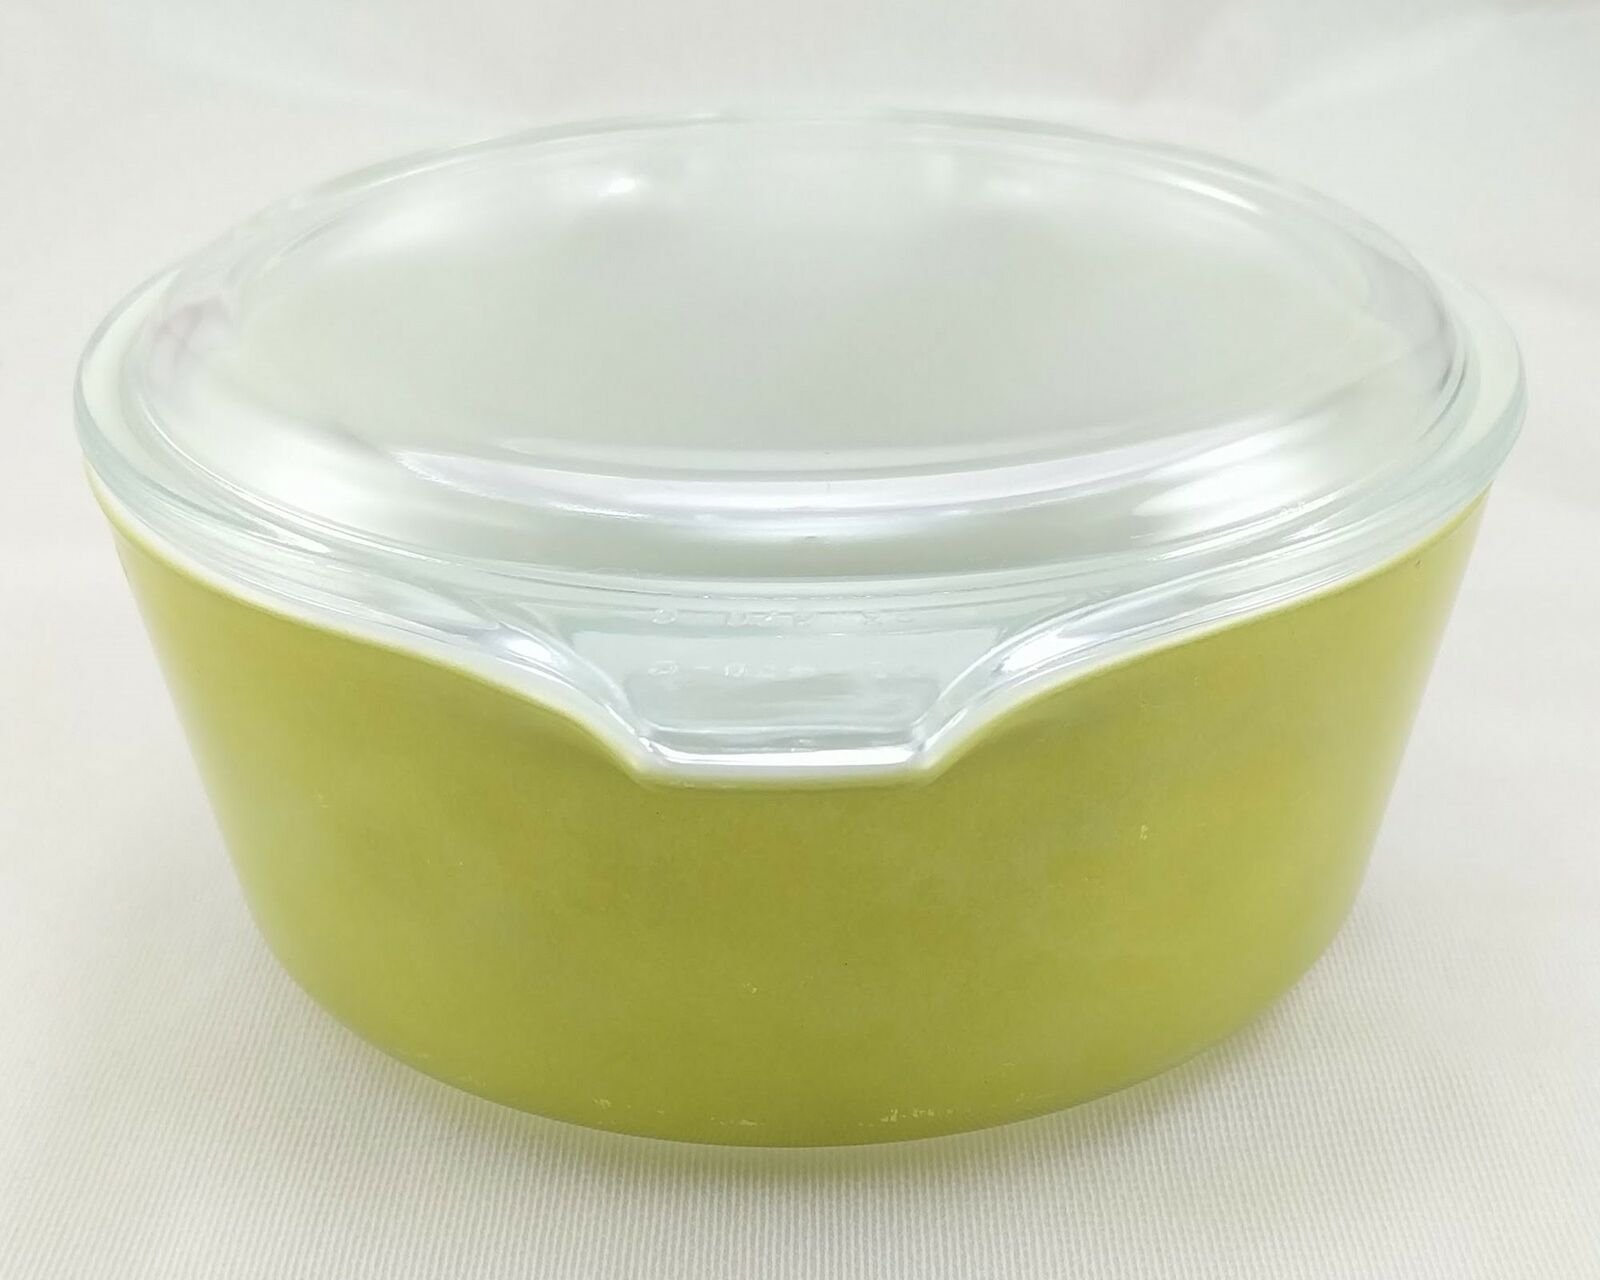 Pyrex 472 Olive Green Vintage 1½ Pint Casserole w/ 470-C Lid ~ Made in the USA image 2